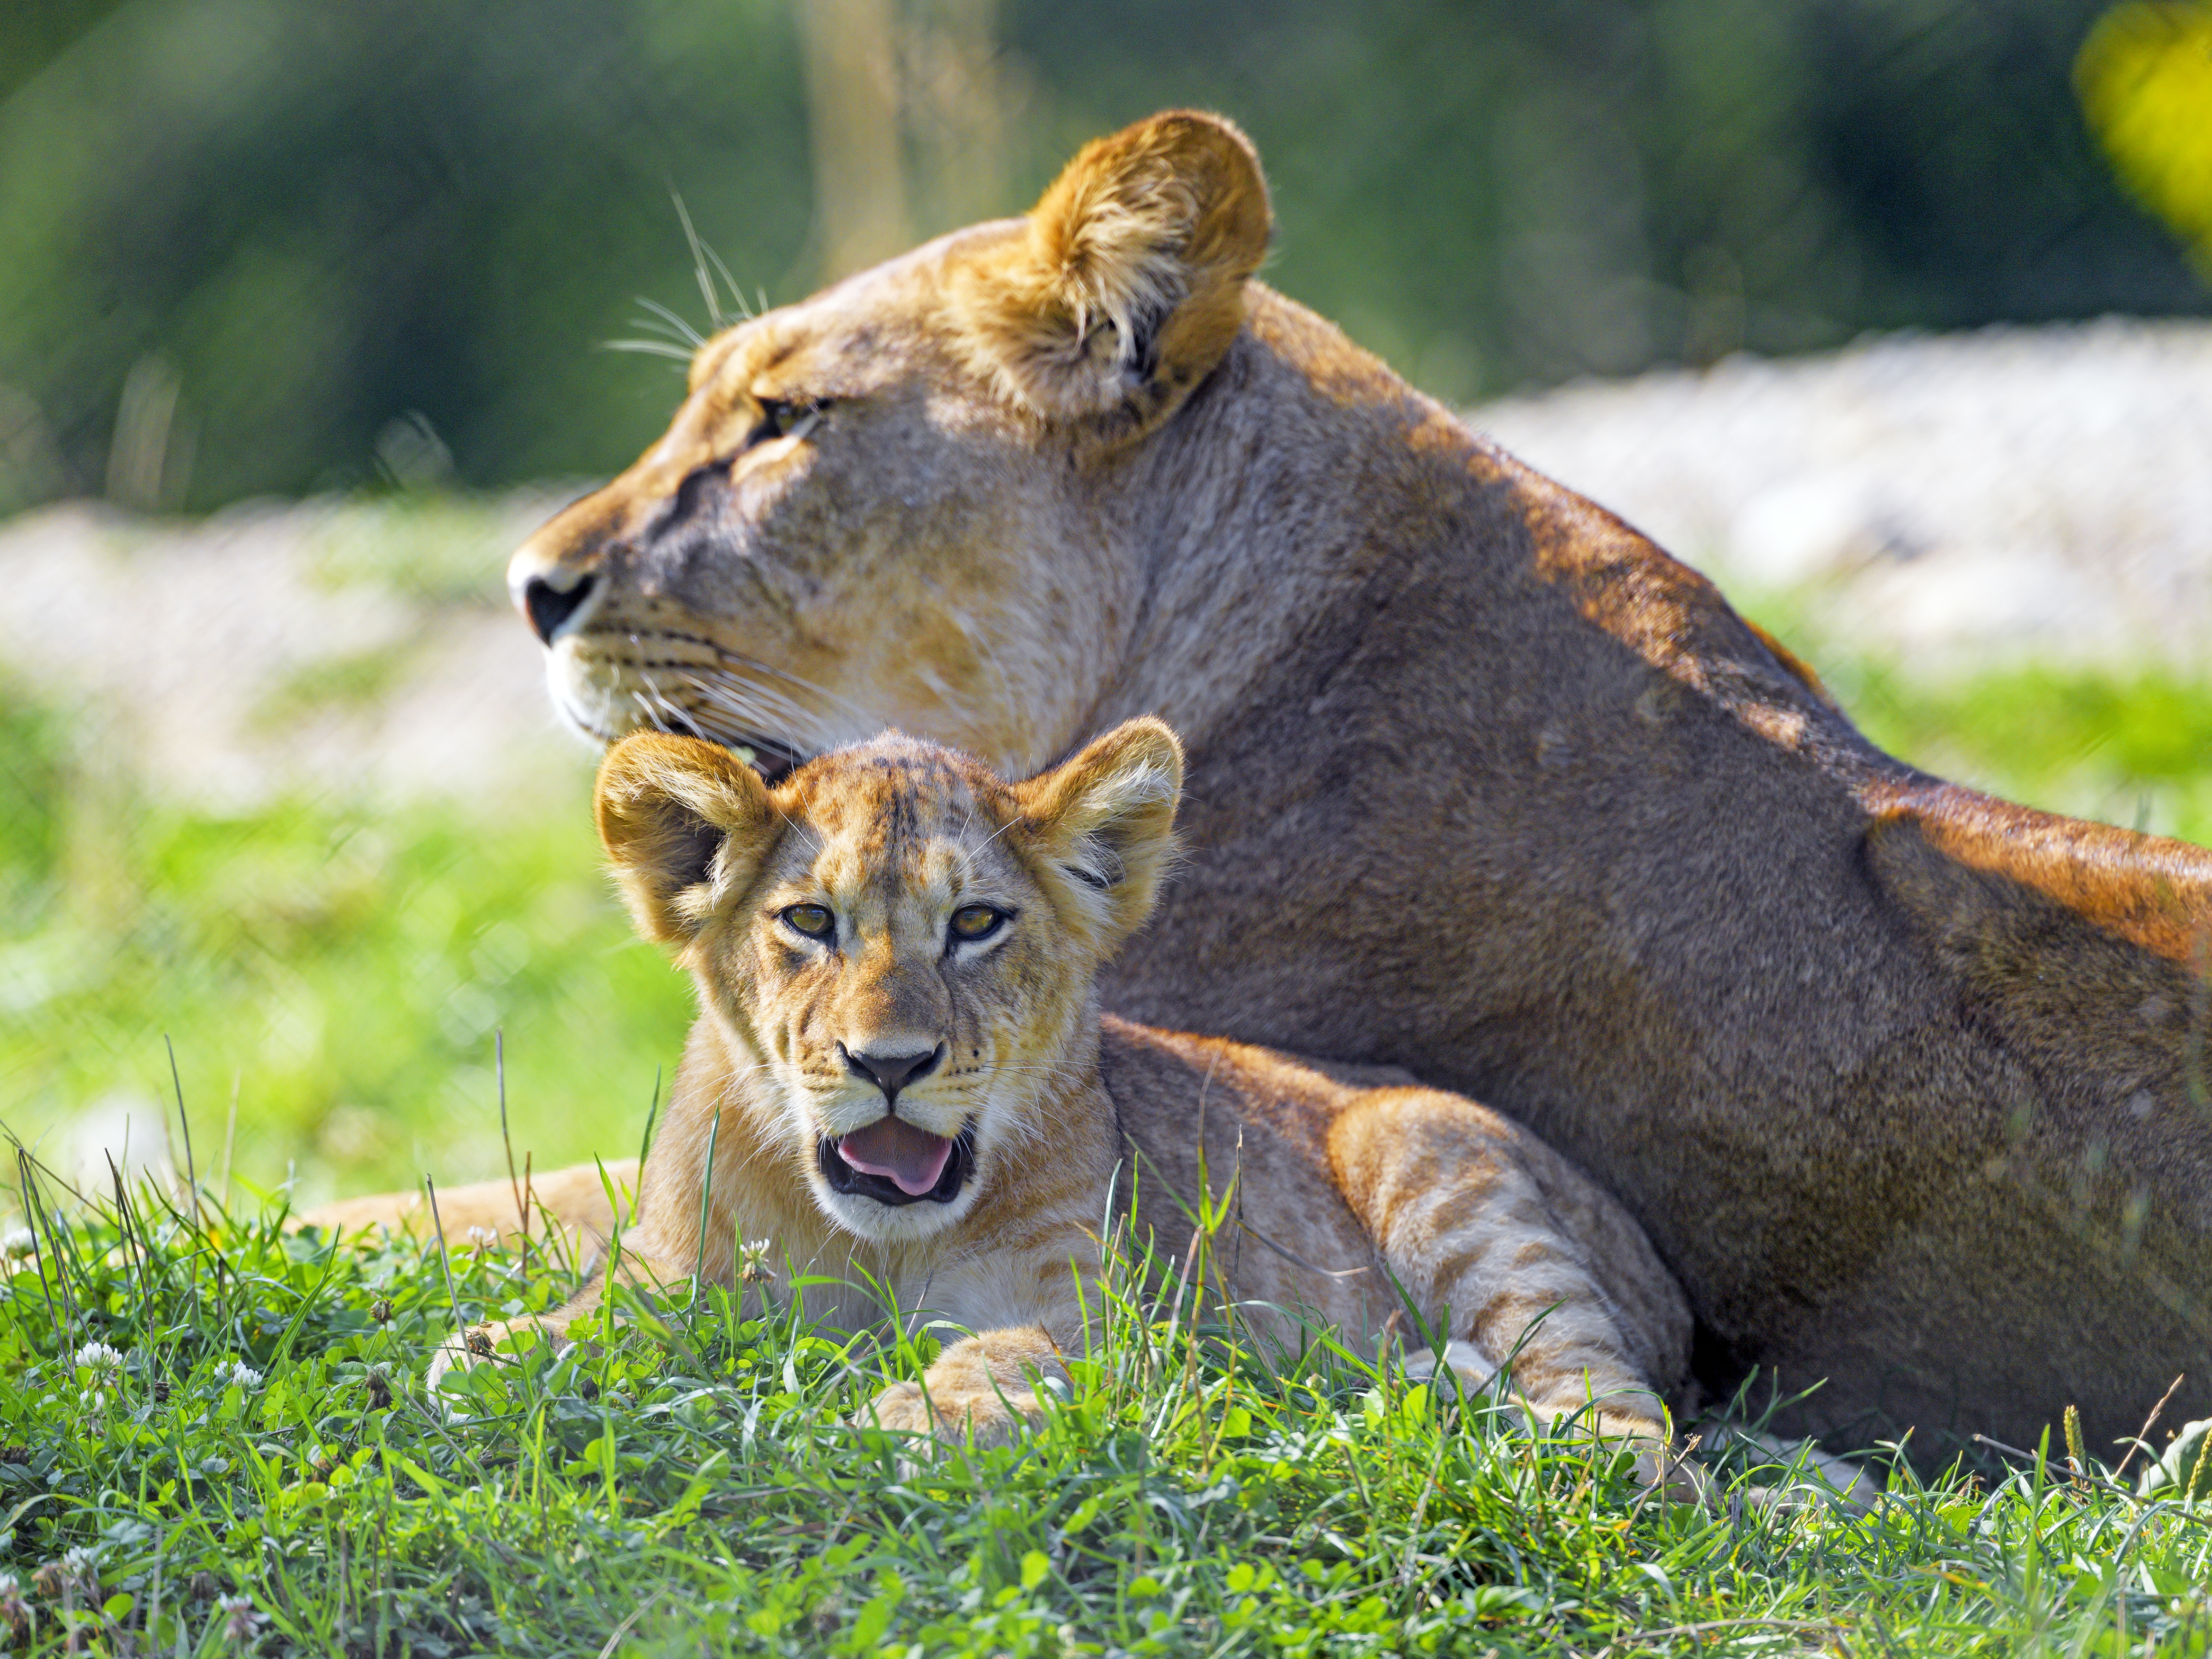 109782 download wallpaper Animals, Lioness, Lion Cub, Lion, Big Cat, Predator, Protruding Tongue, Tongue Stuck Out screensavers and pictures for free